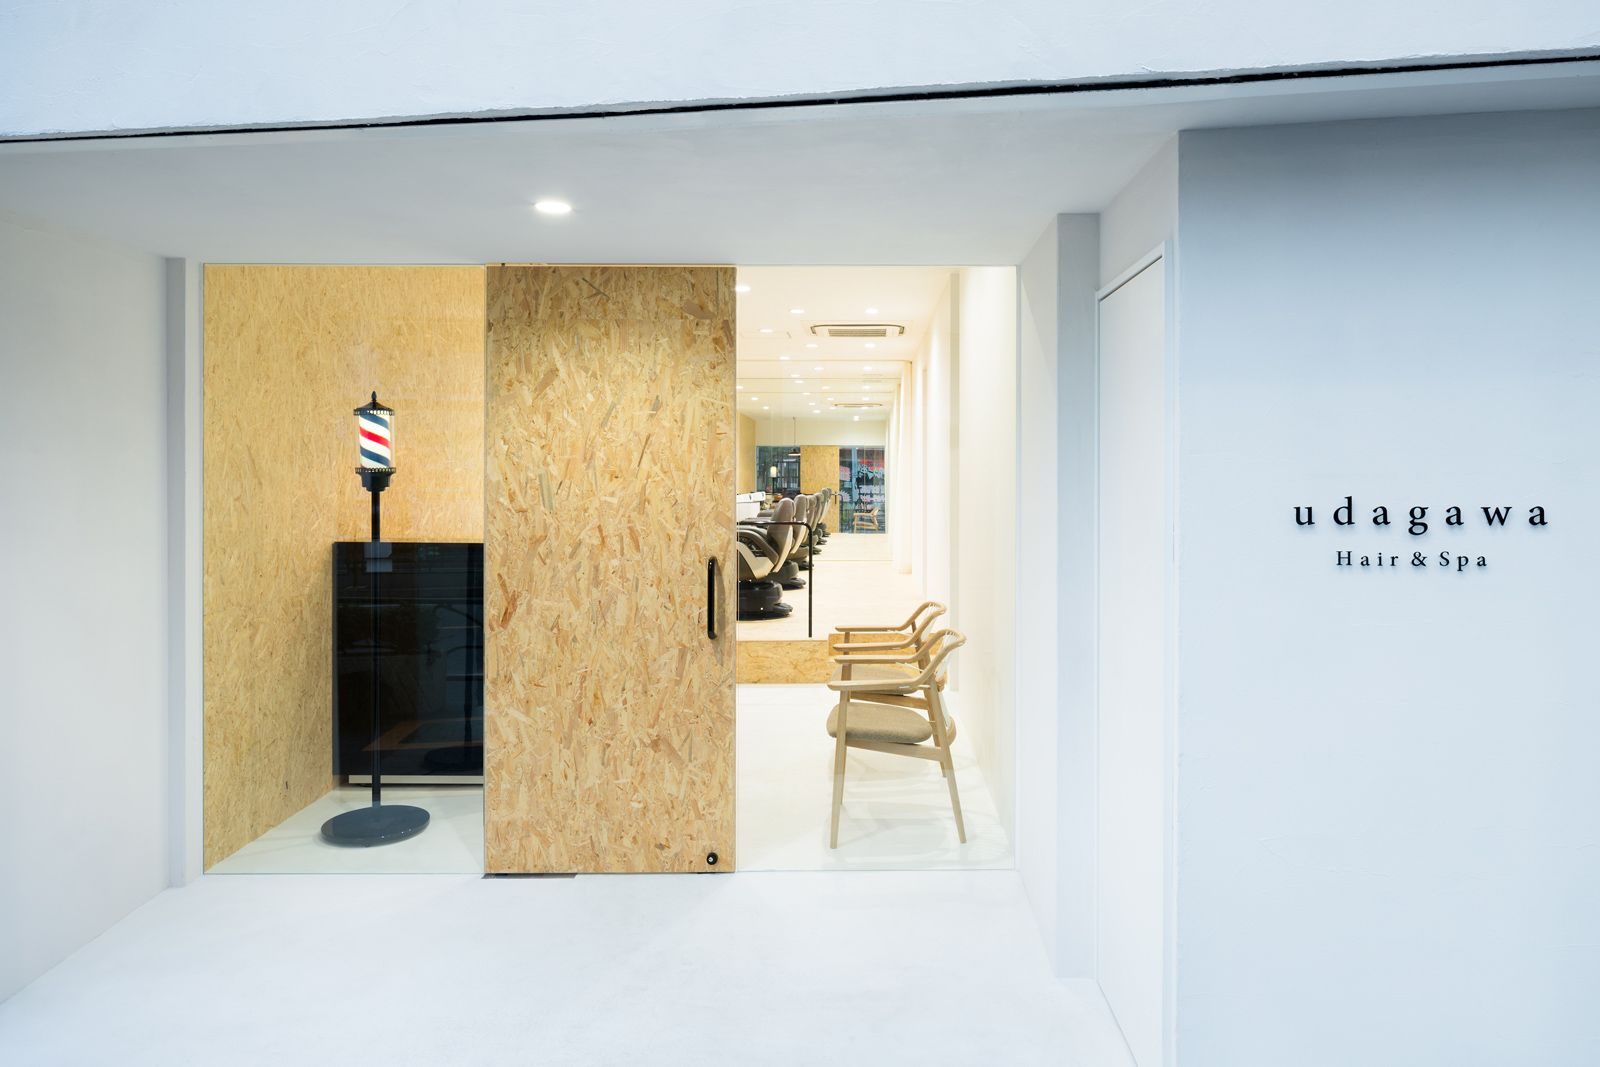 Desain Barbershop Minimalis Udagawa Hair Spa In 2019 Minimalist Interior Barber Shop